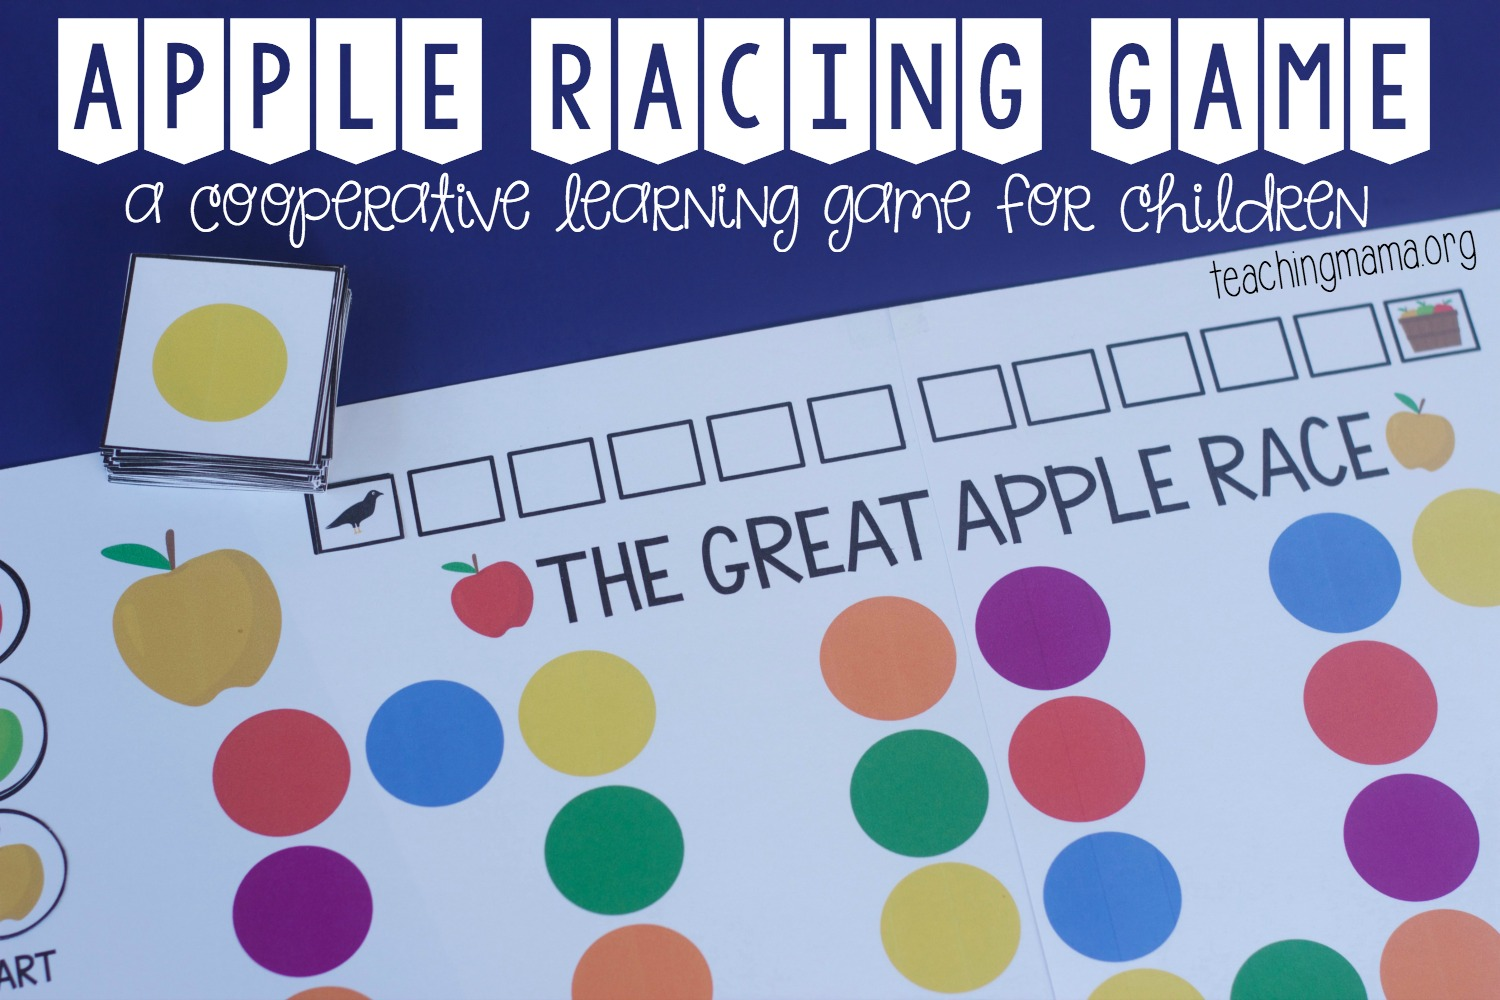 apple-racing-game-a-coopoerative-learning-game-for-children